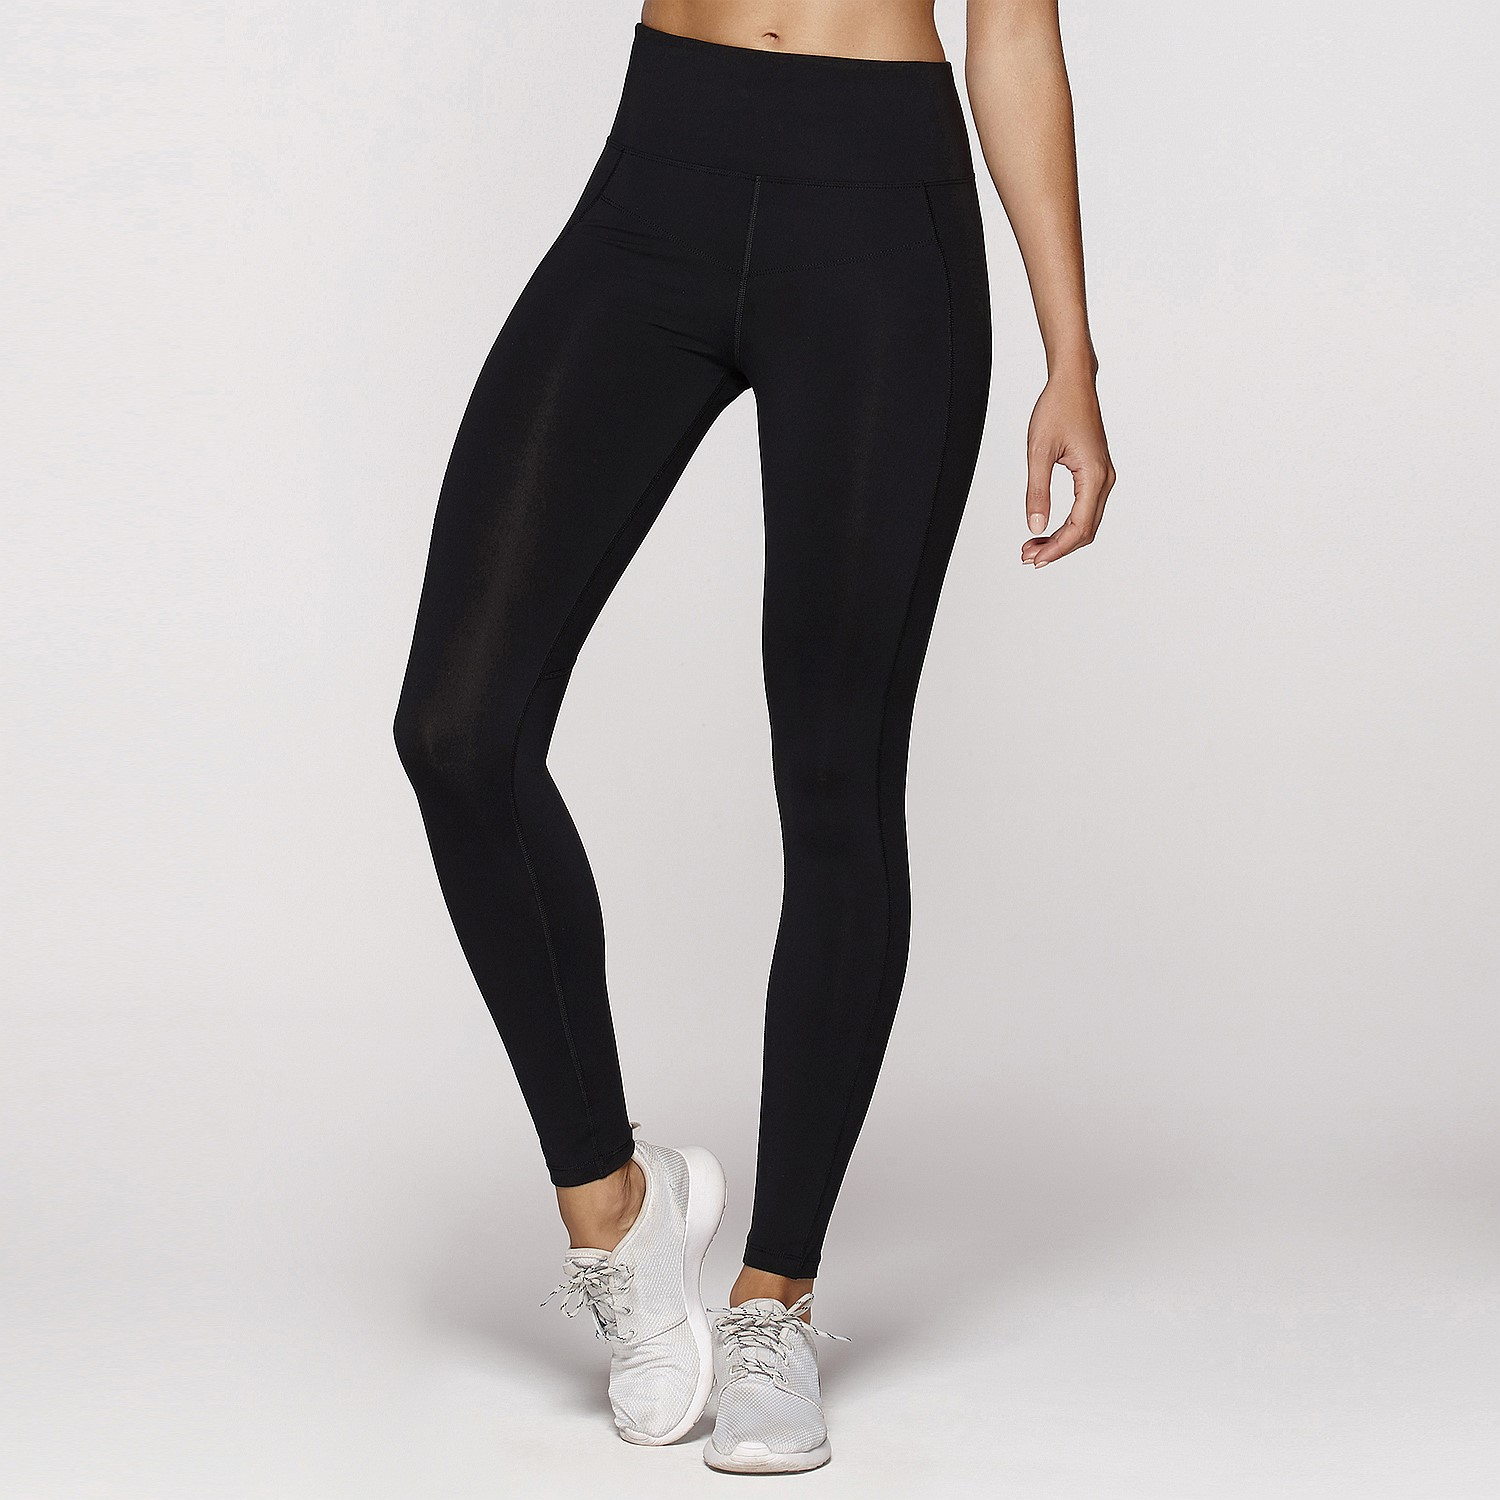 06336ede6d35e9 Gender: Womens; Product Type: Full Length Tights